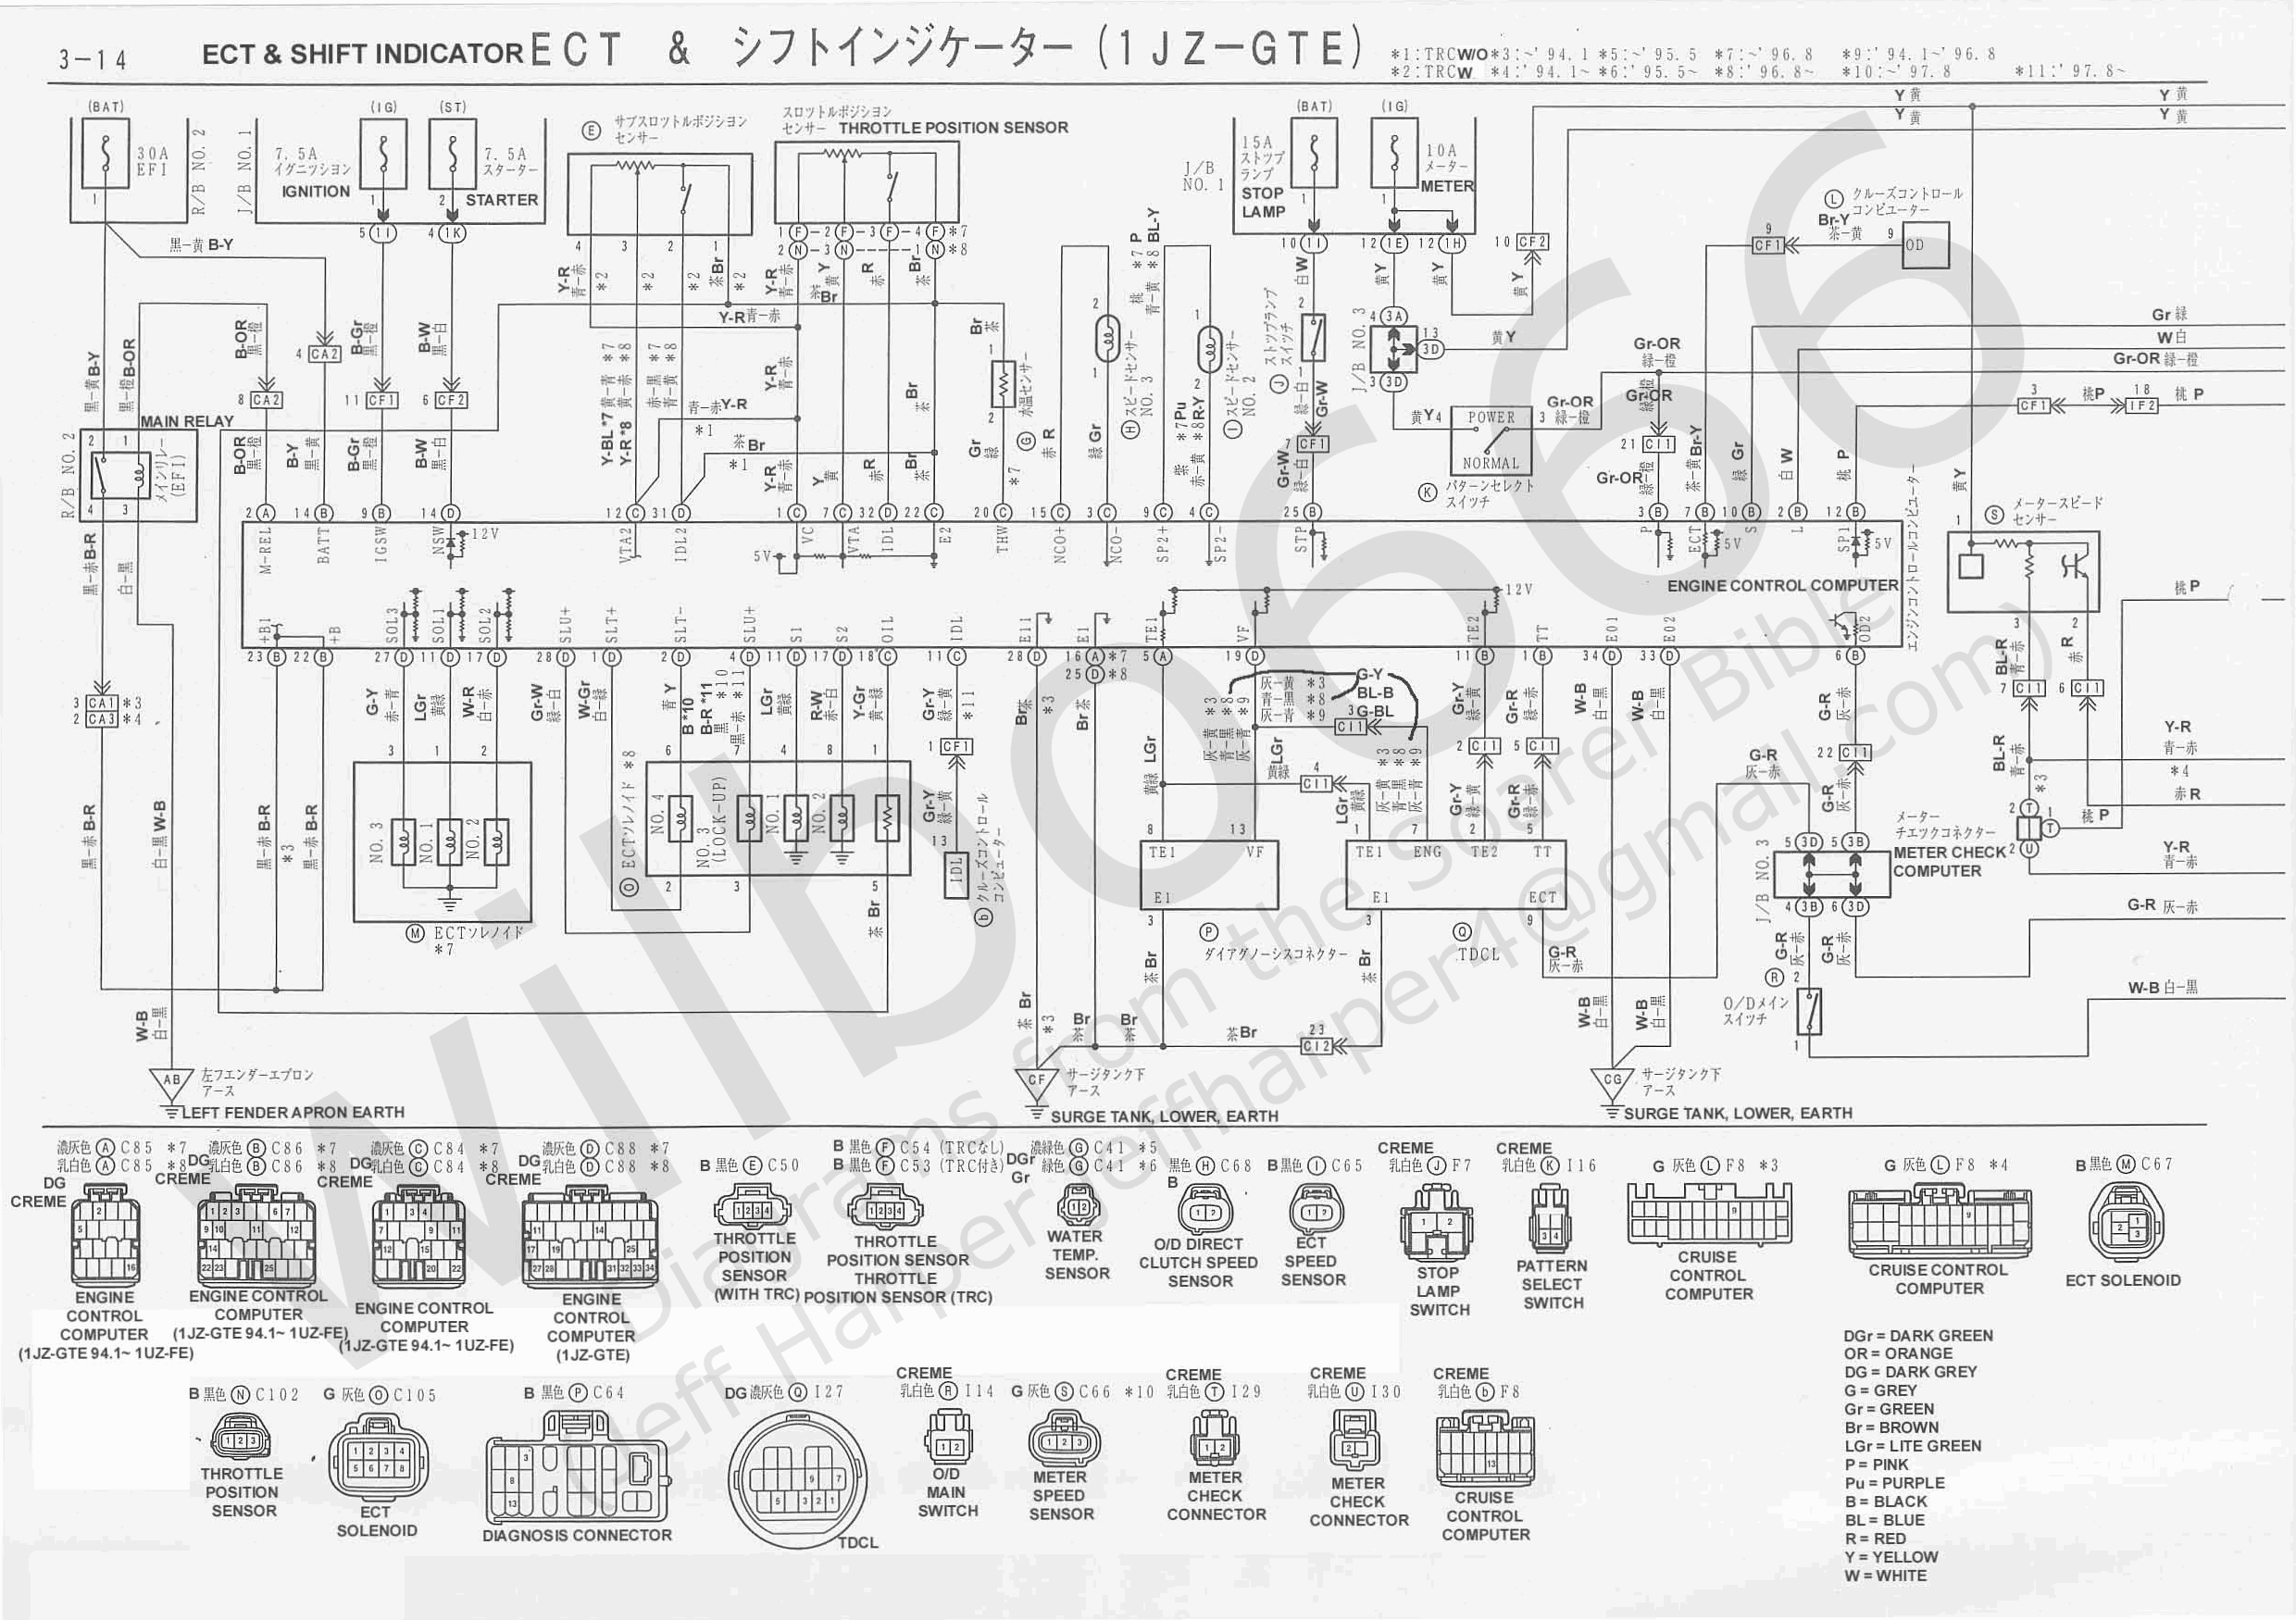 xZZ3x Electrical Wiring Diagram 6737105 3 14?resize\\\\\\\=665%2C469 8 inch bazooka tube wiring diagram bazooka installation diagram bazooka el wiring diagram at alyssarenee.co